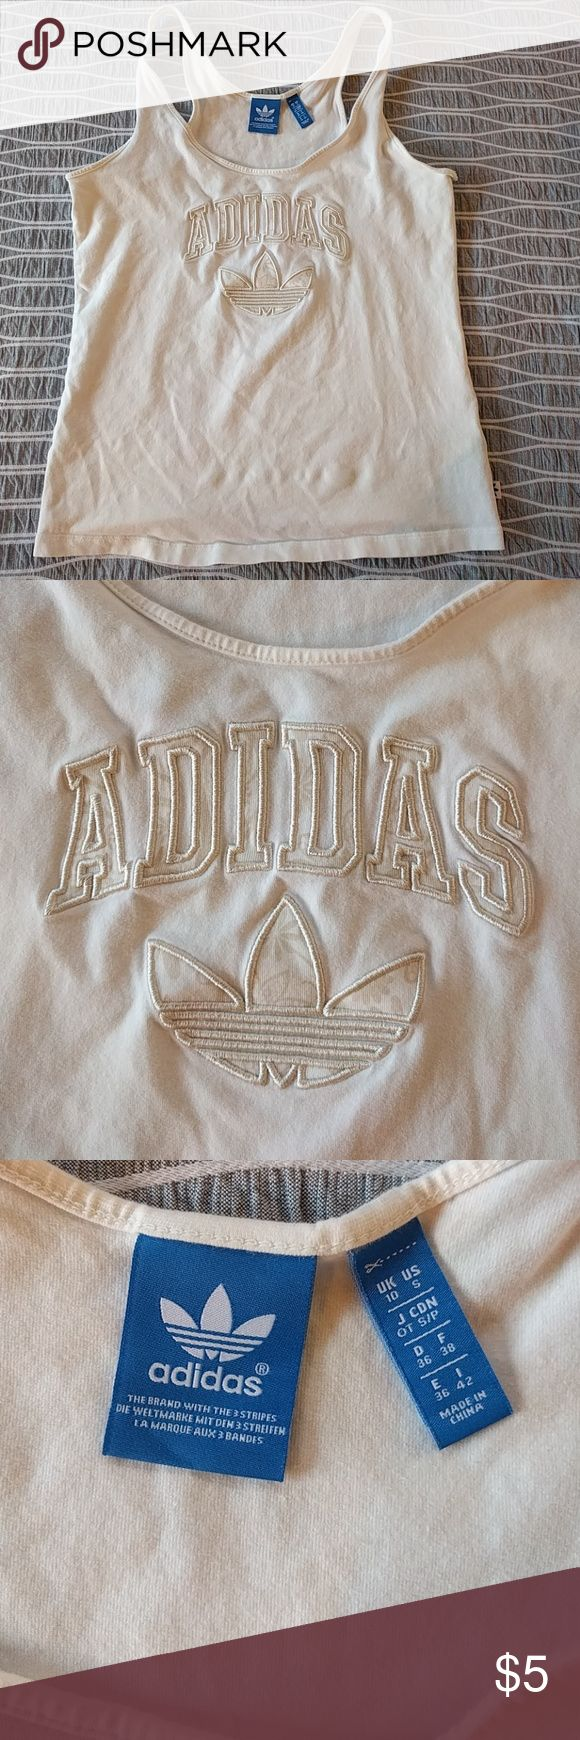 Adidas muscle tank Light cream colored adidas tank worn/washed twice. No stains and in excellent condition (just washing). Adidas Tops Tank Tops